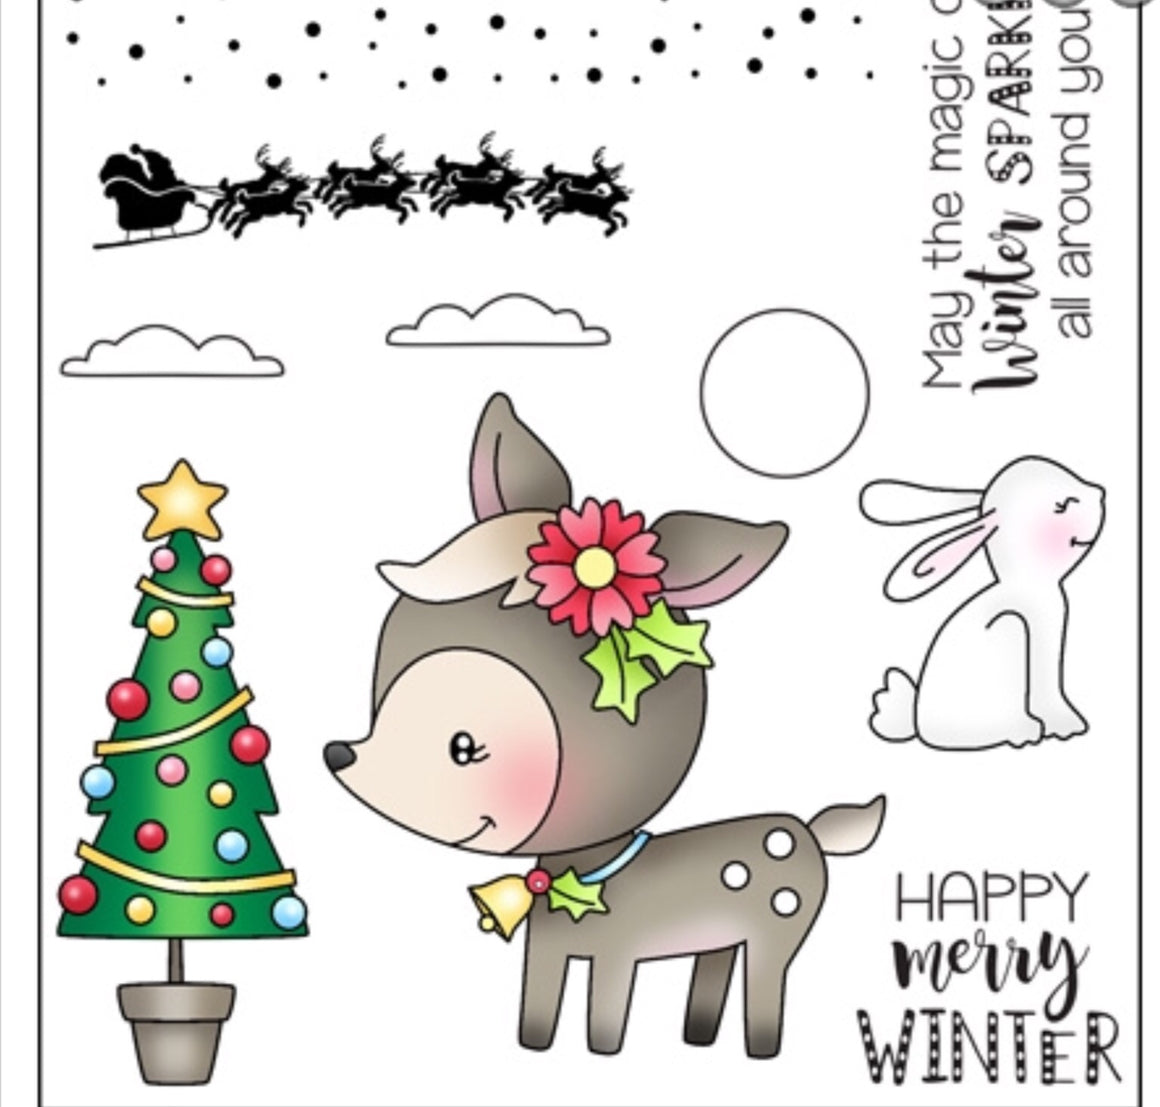 Darcie's Heart & Home- Winter Sparkle clear stamp & flat back Tin pin bundle